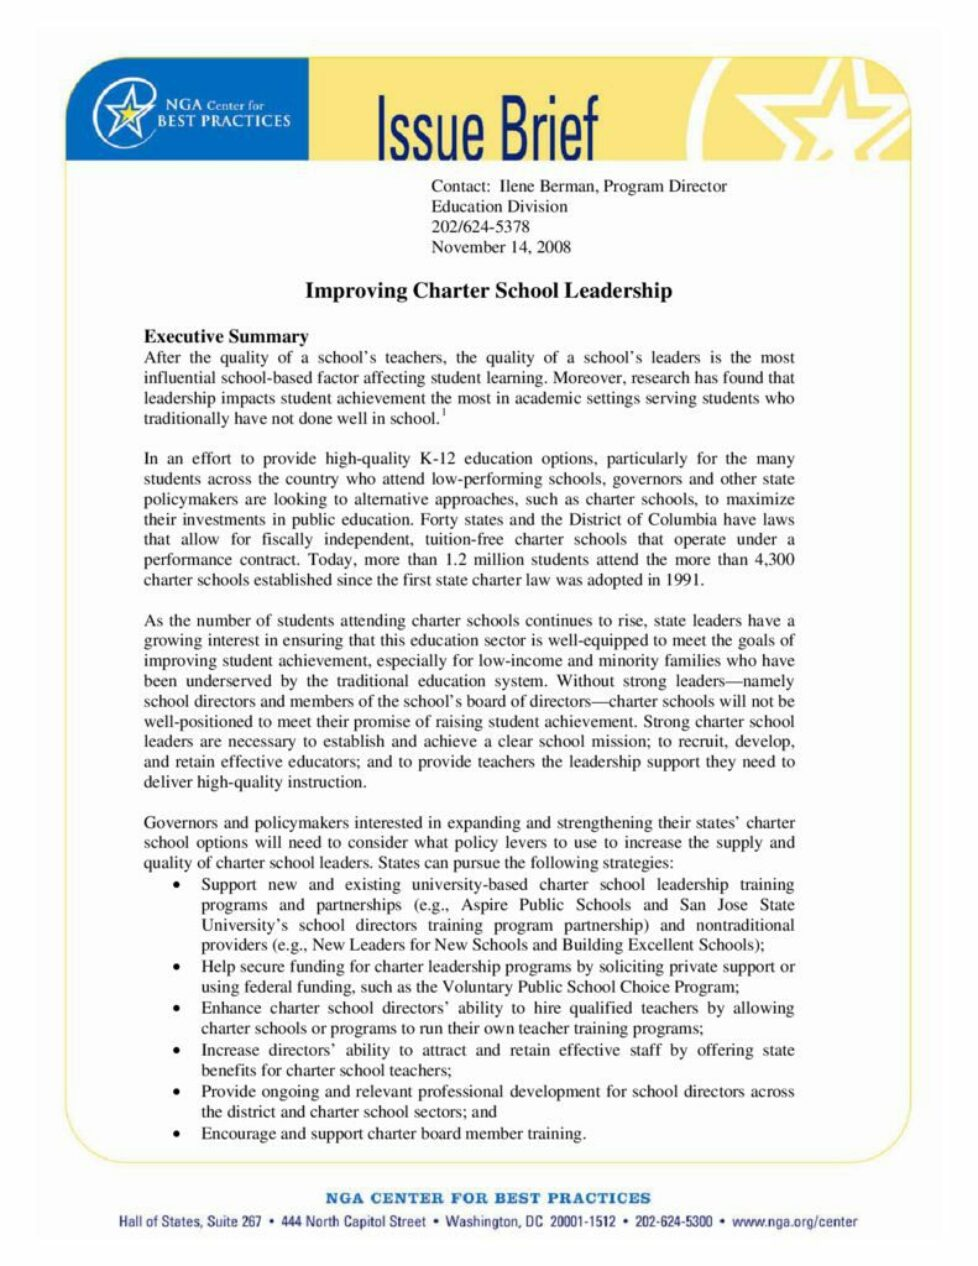 thumbnail of issuebrief-improving-charter-school-leadership